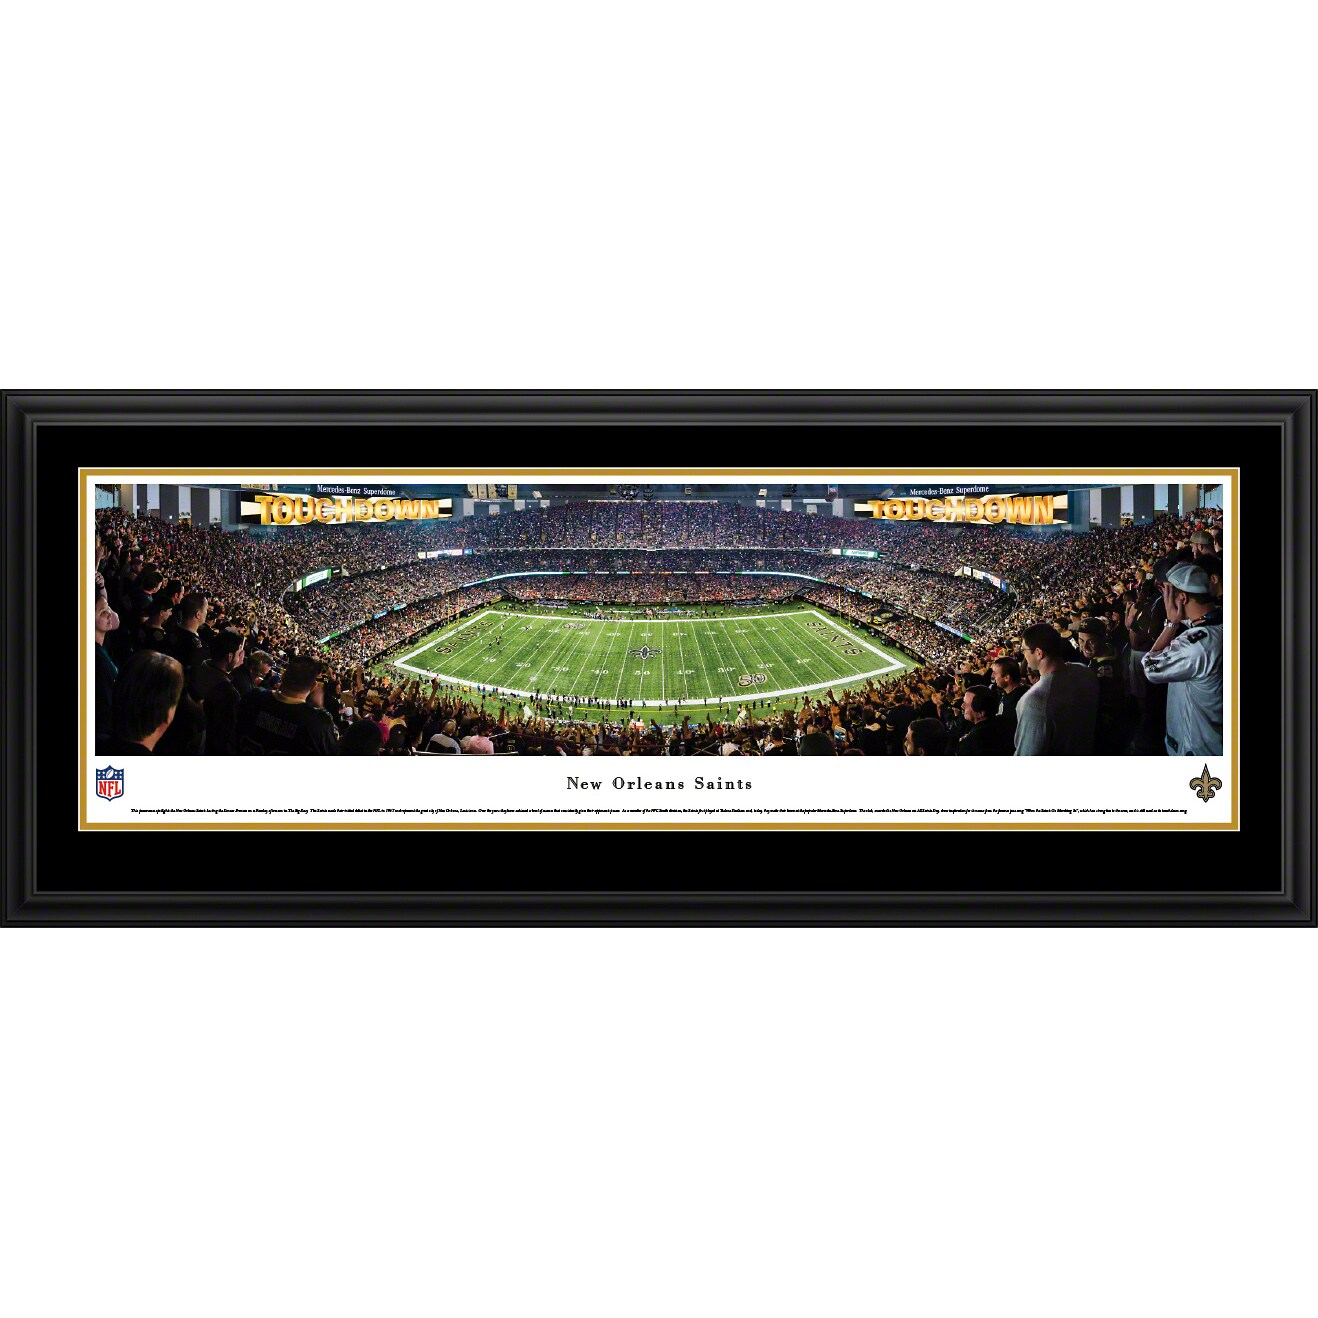 "New Orleans Saints 18"" x 44"" Deluxe Frame Panoramic Photo"